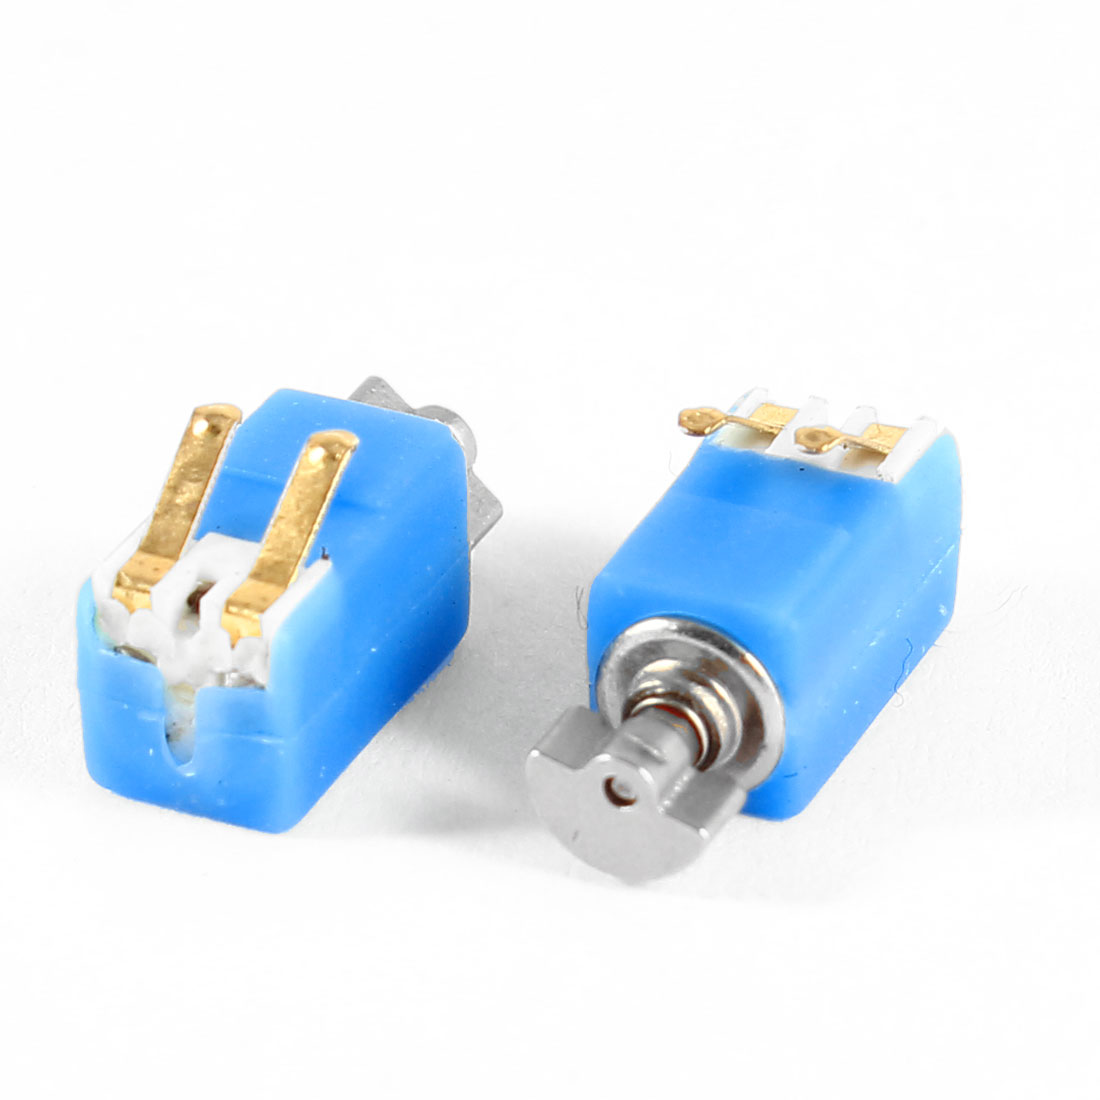 4.6mm x 4.8mm x 8.2mm Blue DC 3V 2000RPM Mini Micro Vibration Motor 2 Pcs